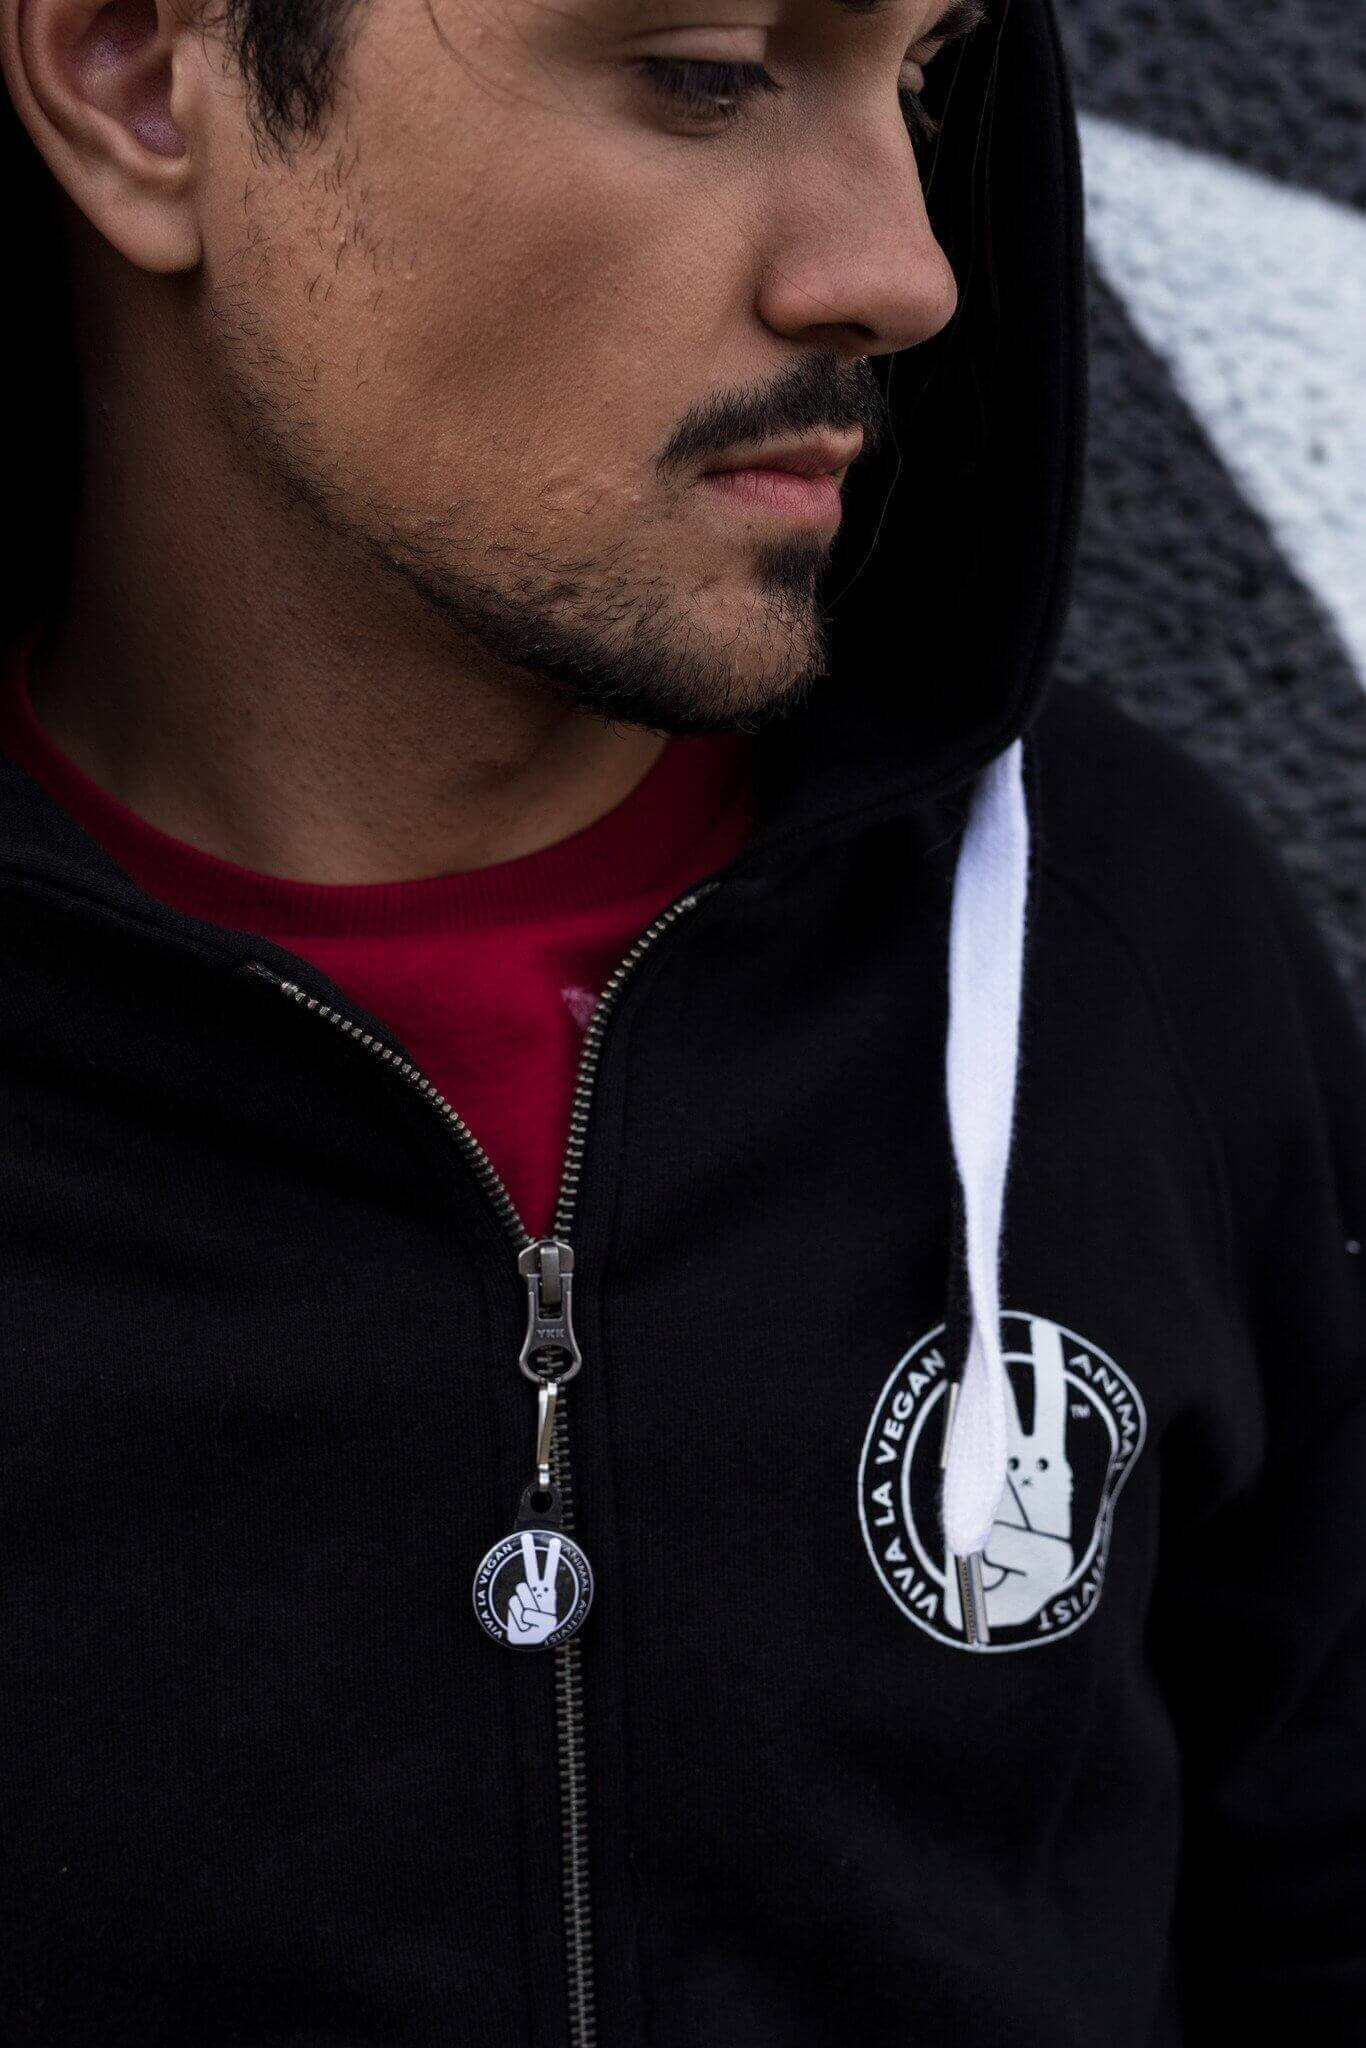 UNISEX Zip Through Hoodie : Circus Of Suffering. Exploitation Not Entertainment